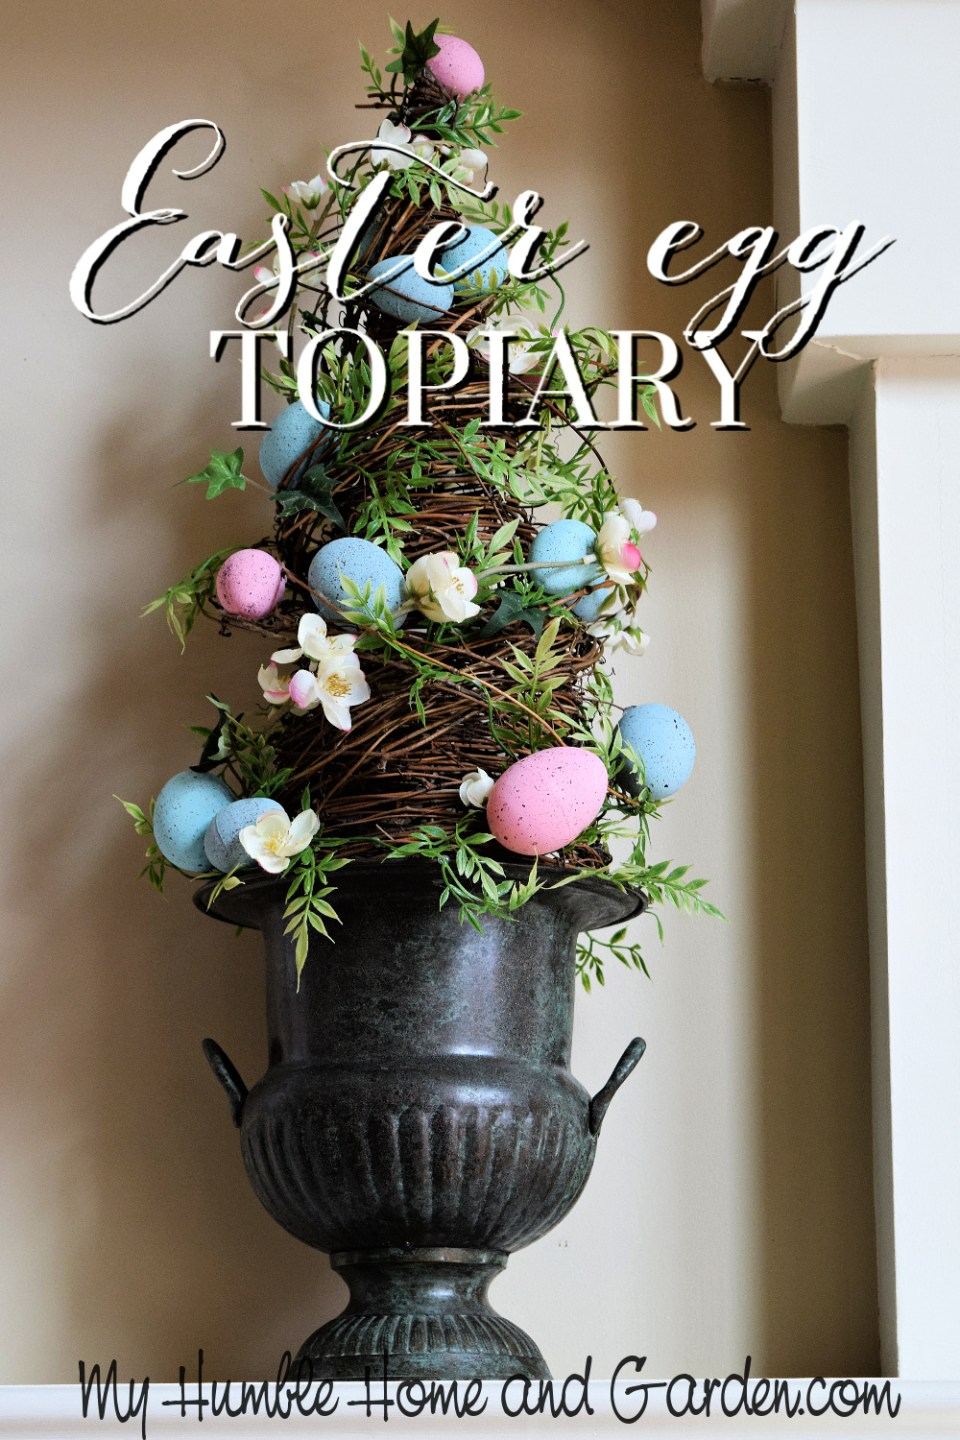 How To Make A Cheap Painted Easter Egg Topiary My Humble Home